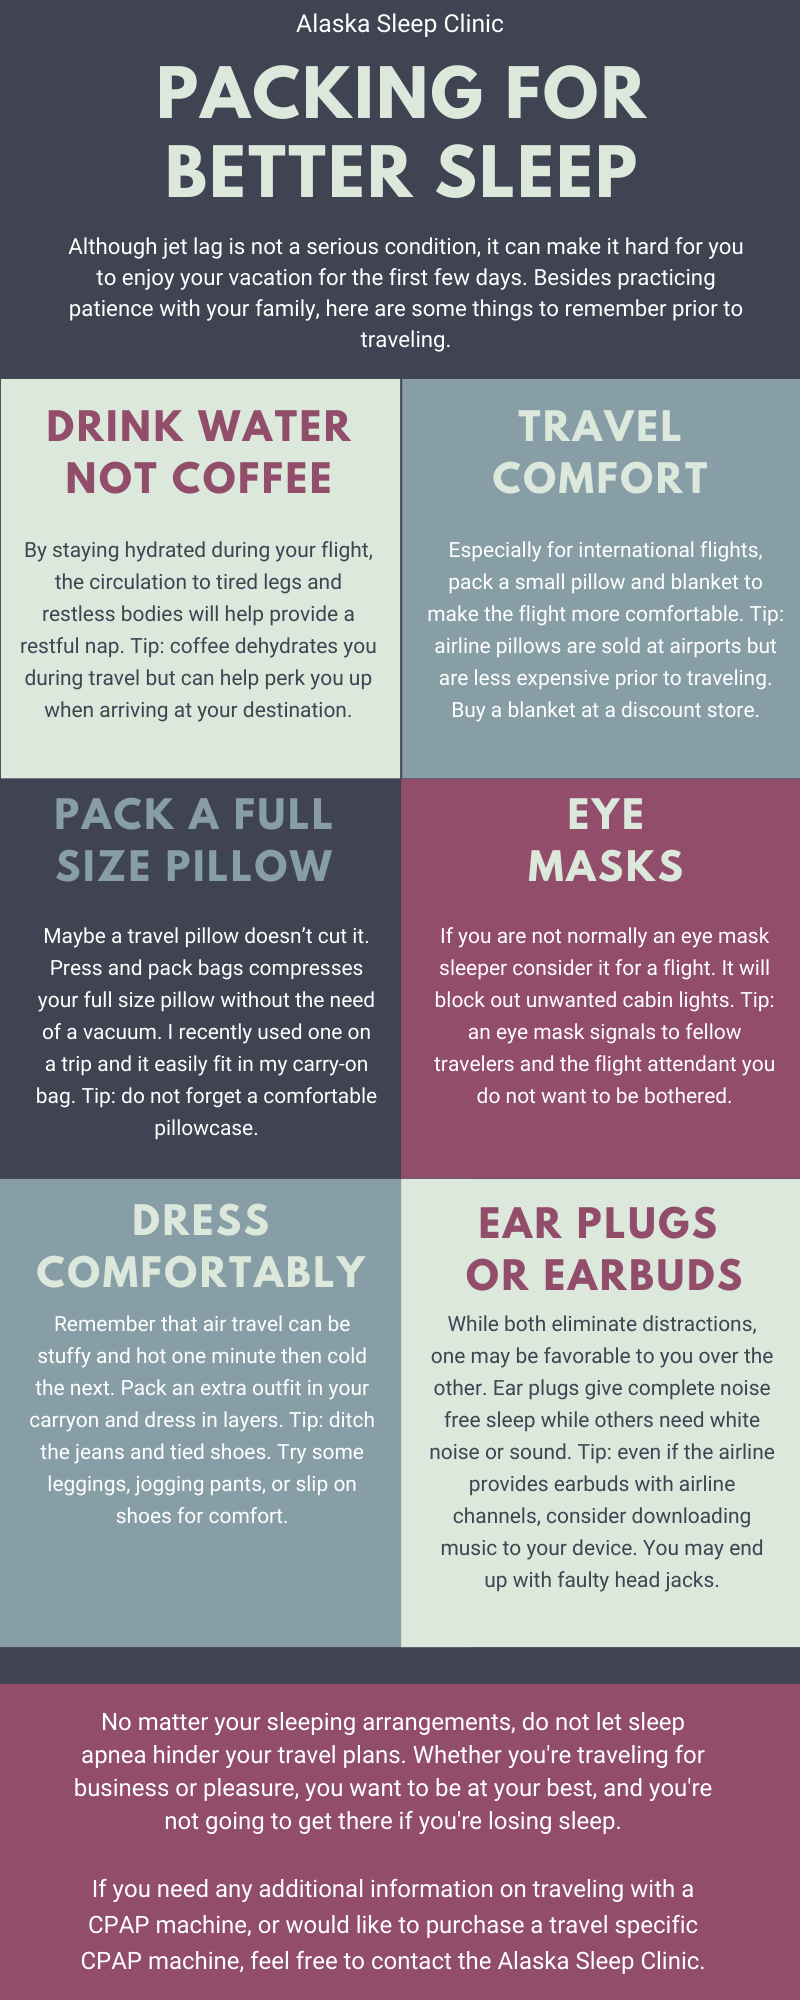 Packing for Better Sleep